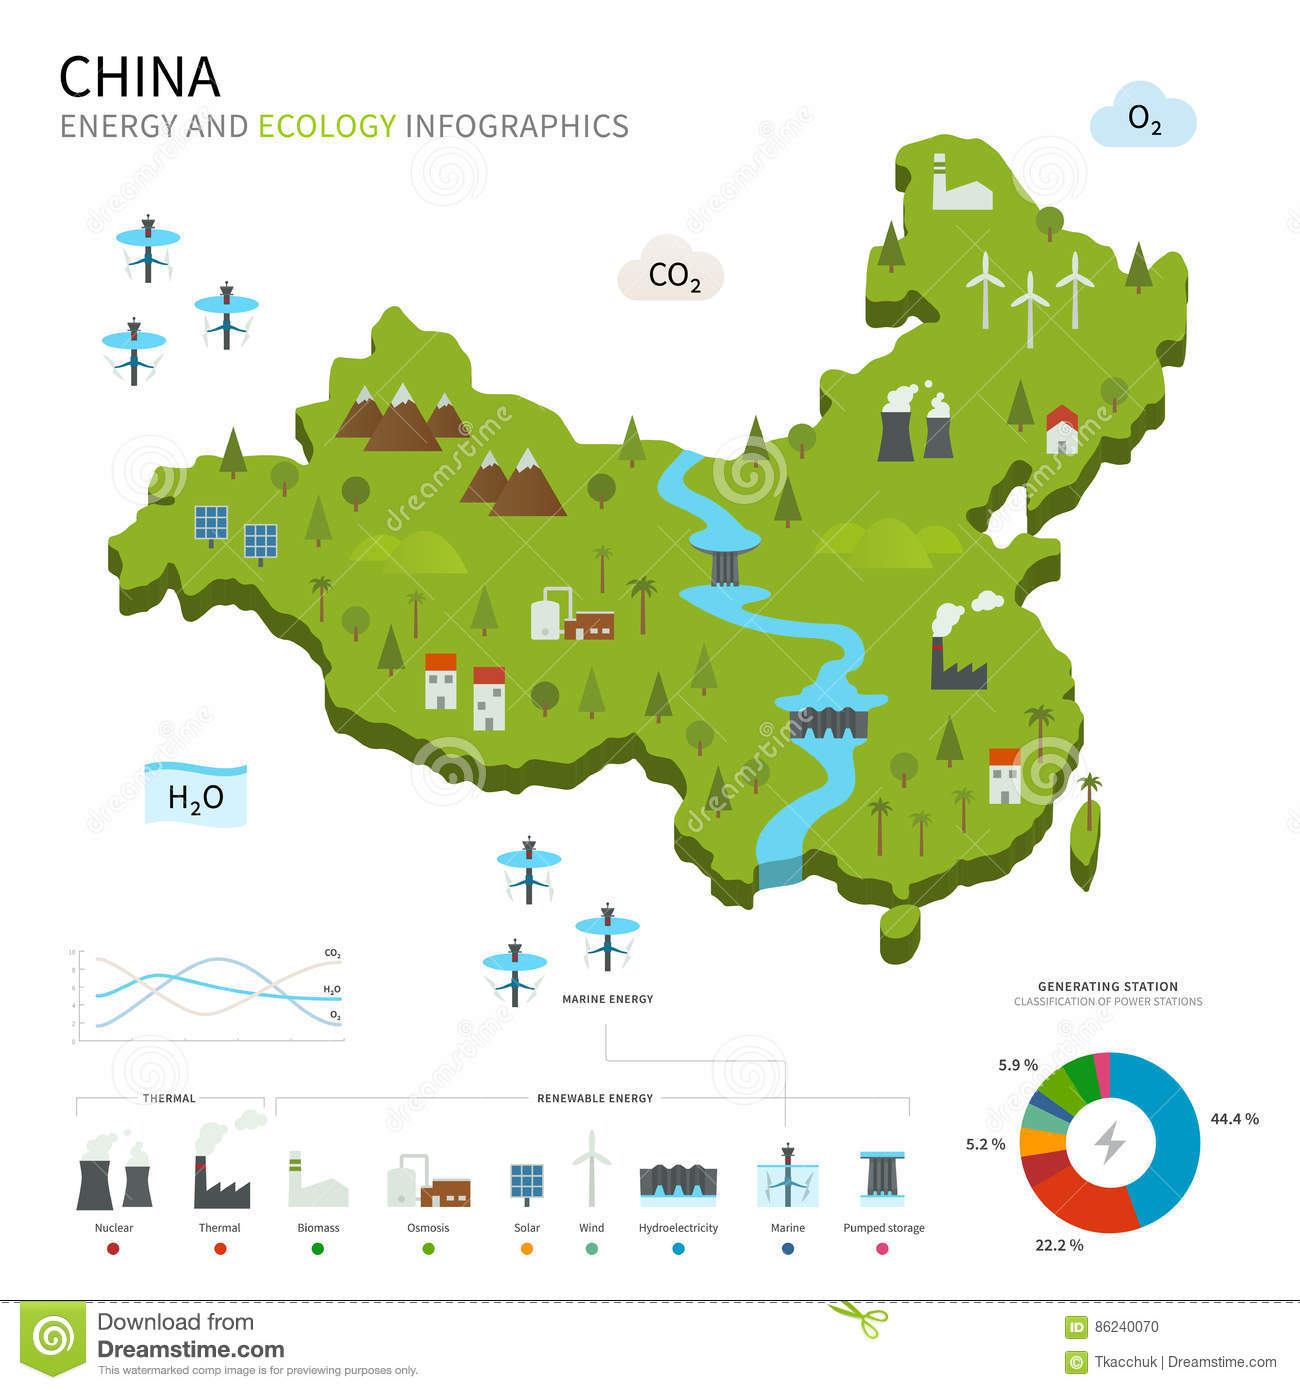 Carte Chine Energie.Industrie Energetique Et Ecologie De La Chine Illustration